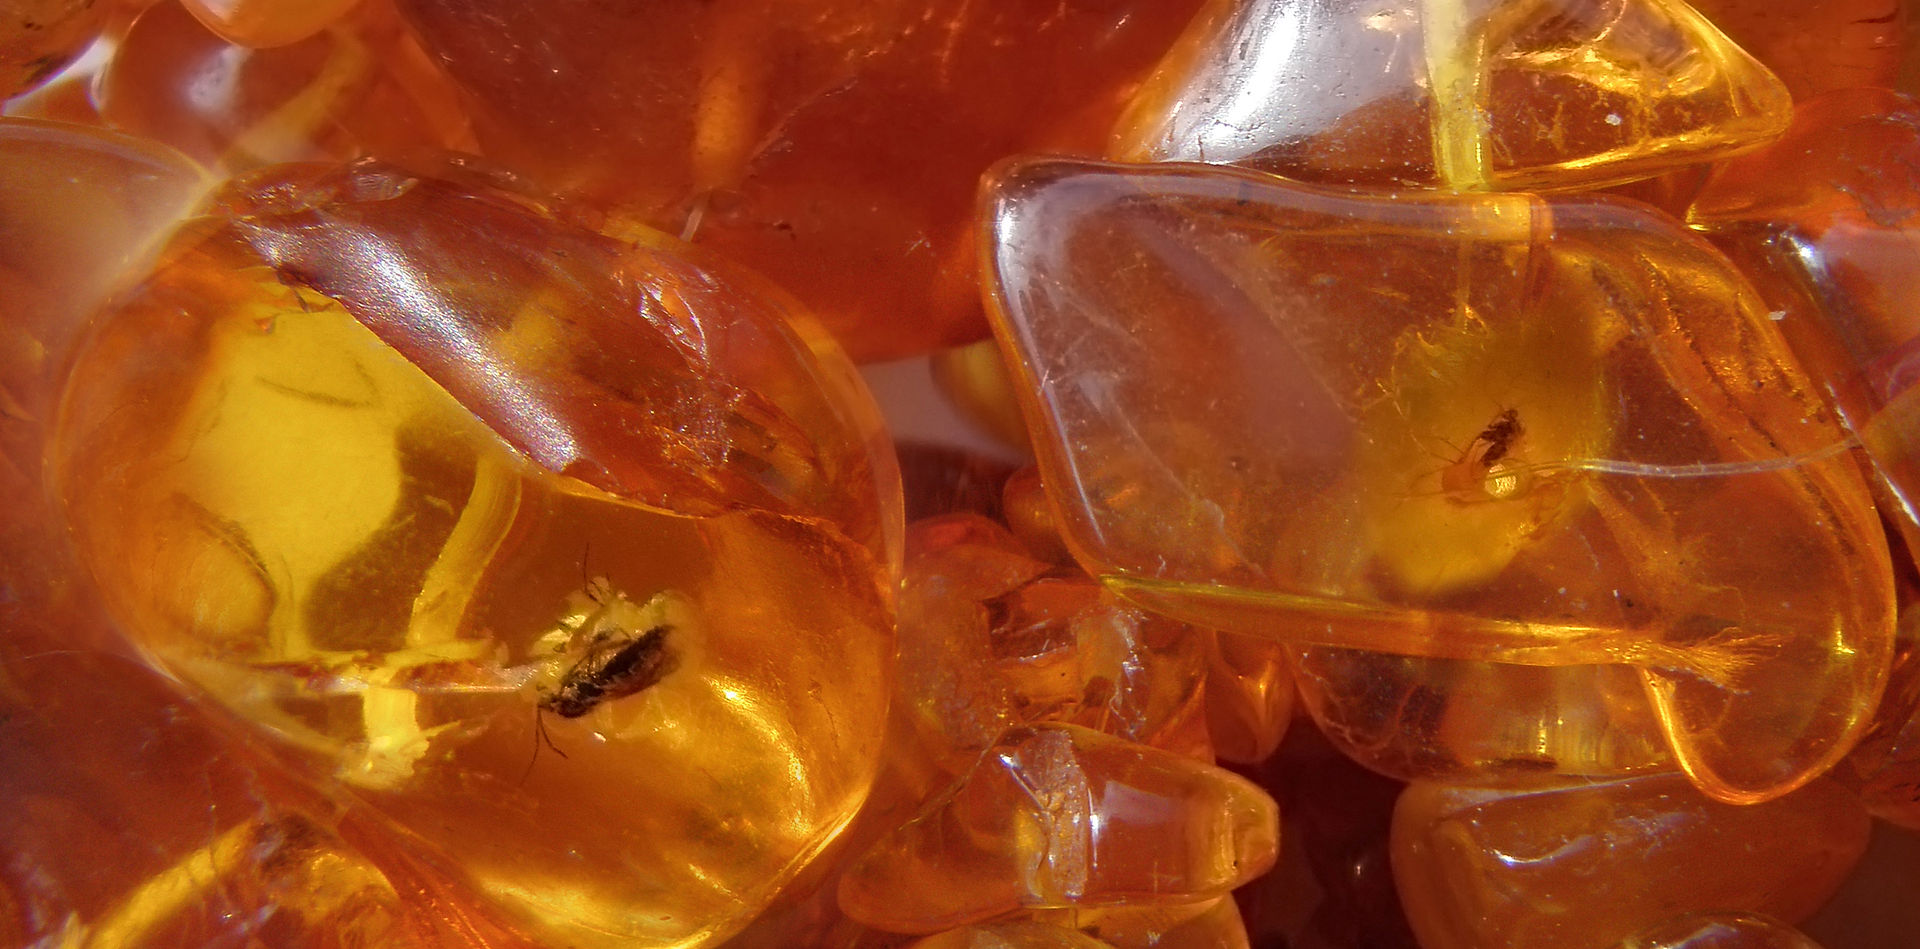 1920px-Baltic_Amber_necklace_with_insects_inclusions.jpg